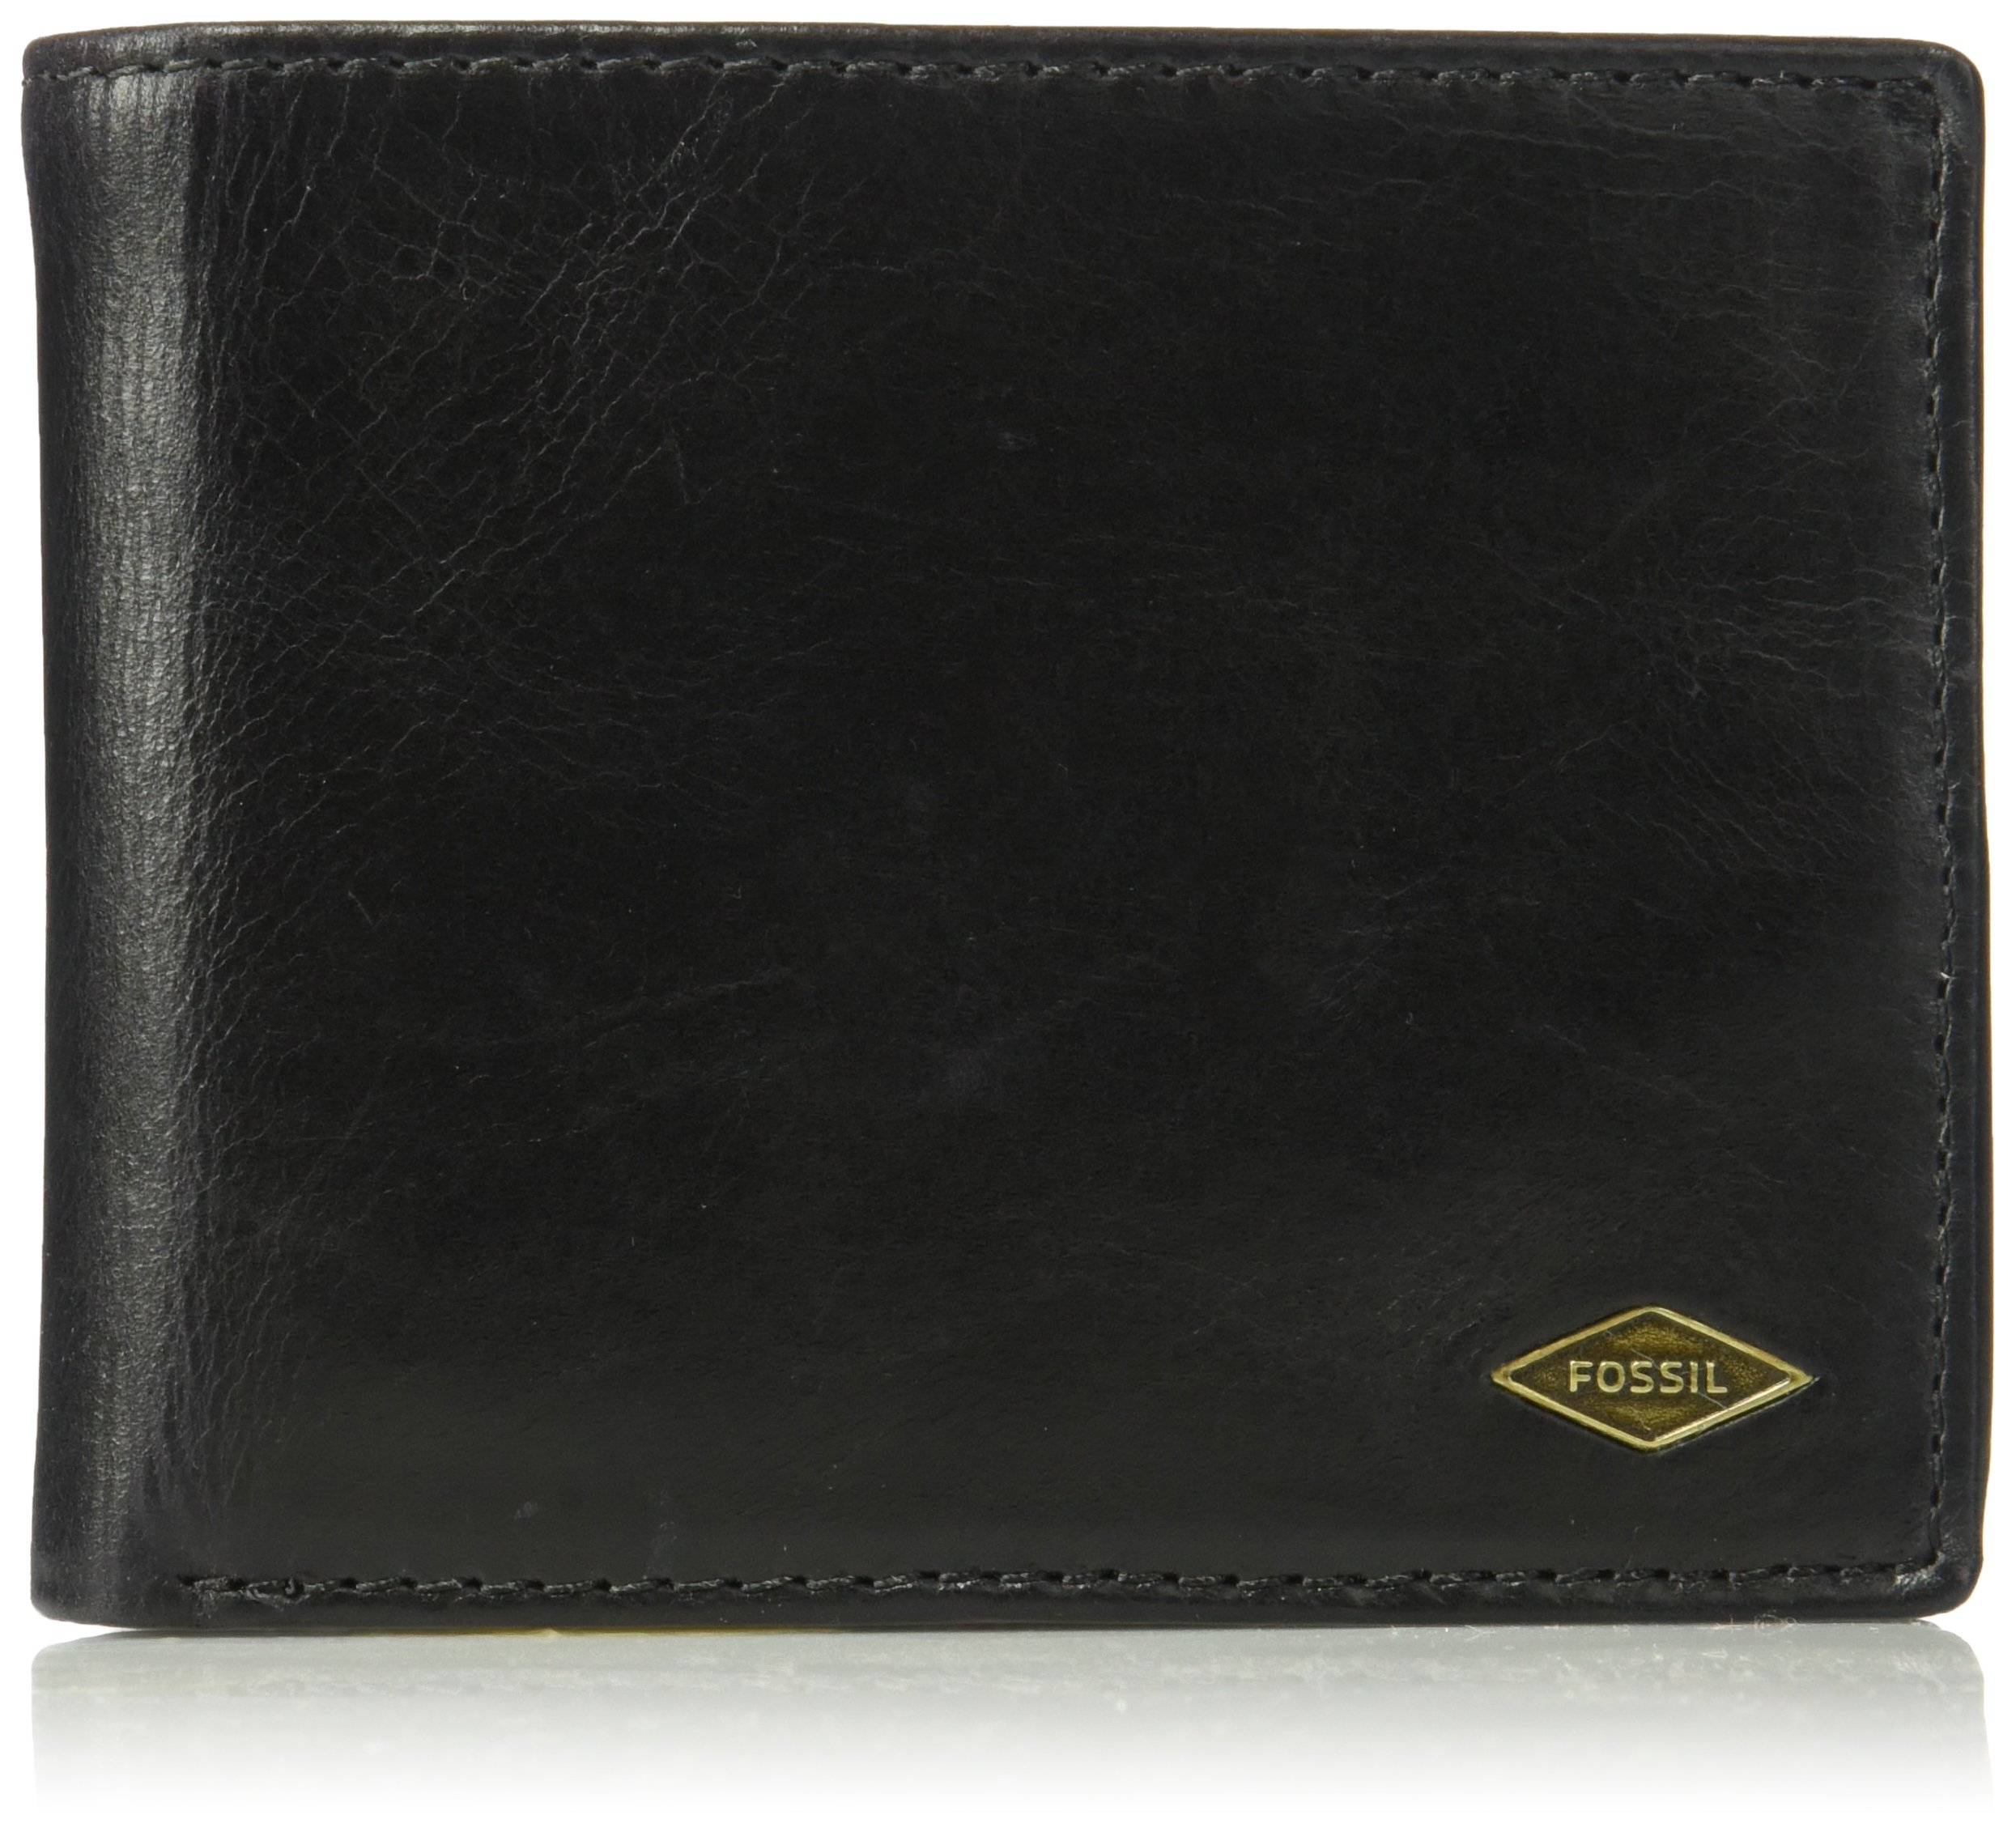 Fossil Men's Leather RFID Blocking Bifold Flip ID Wallet, Black, One Size